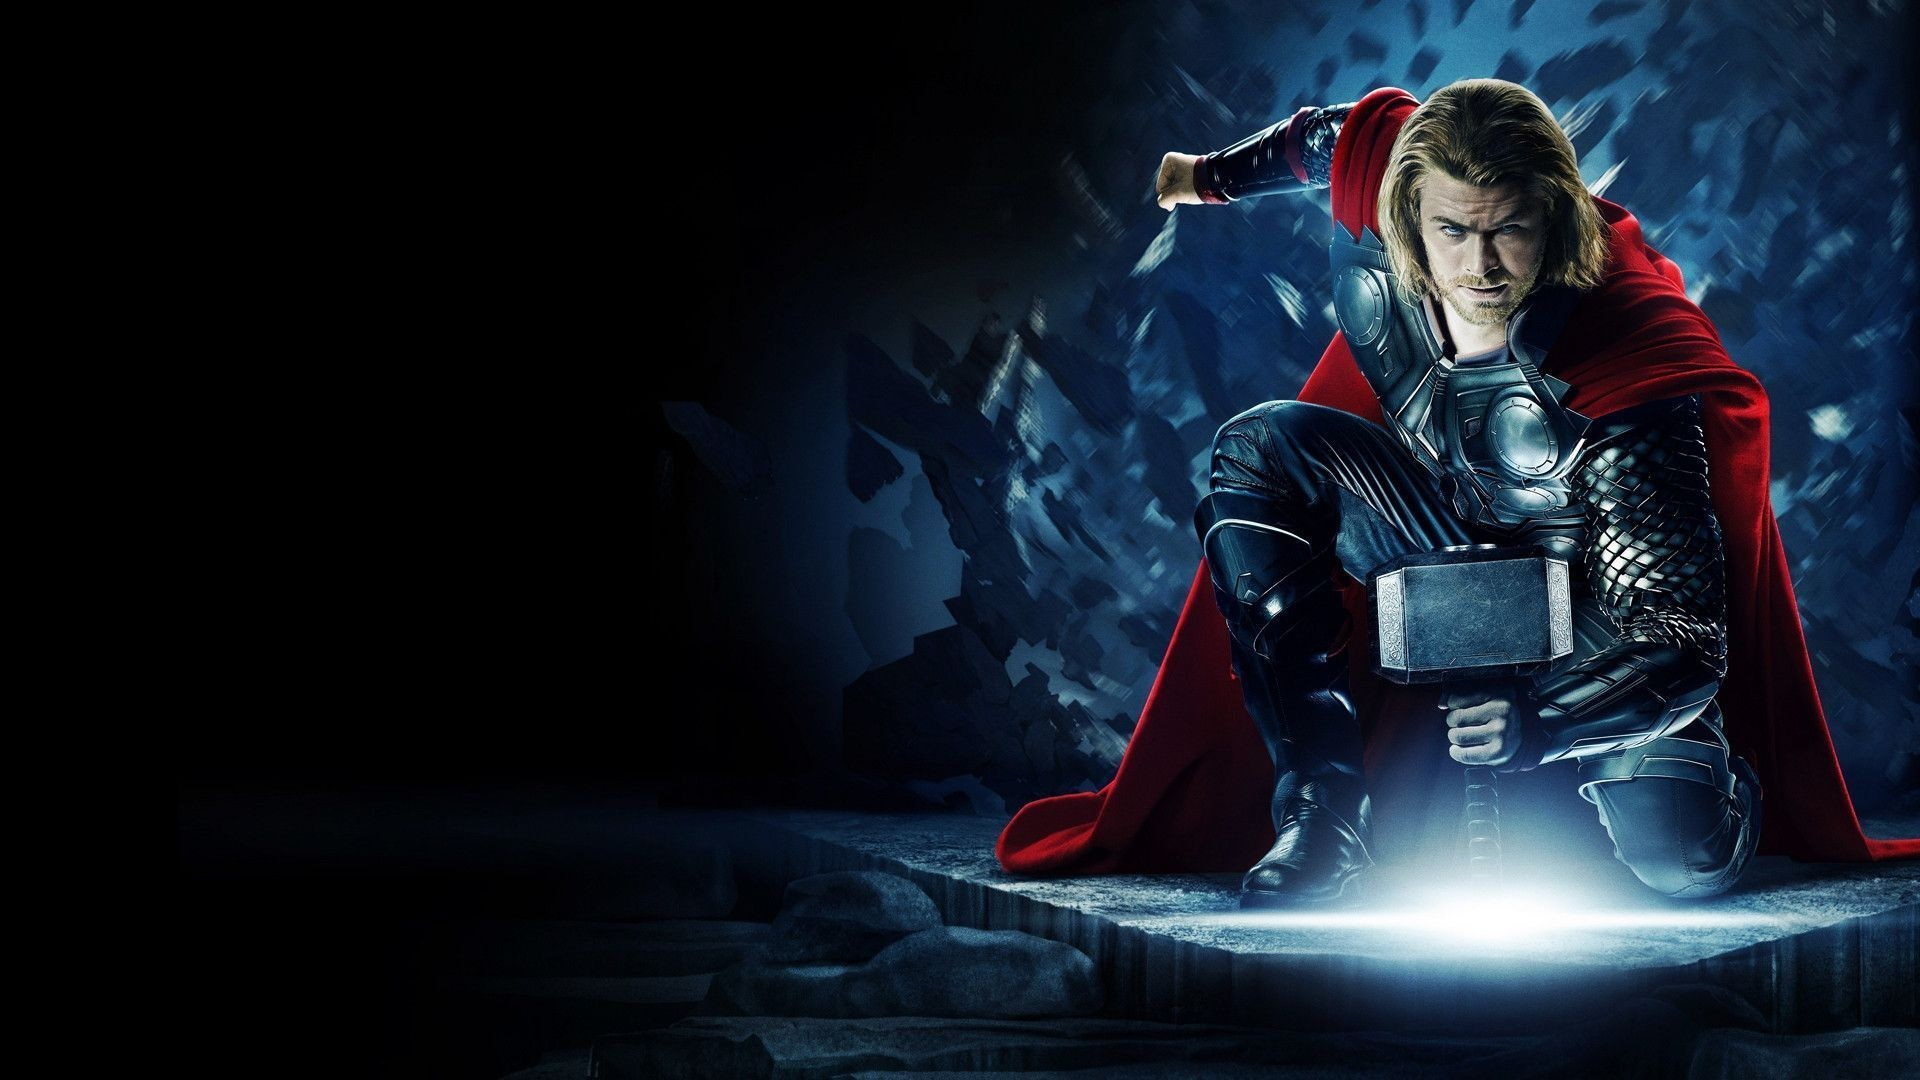 Res: 1920x1080, THOR Movie Multi Monitor Wallpapers HD Wallpapers 1920×1200 Thor HD  Wallpapers (35 Wallpapers